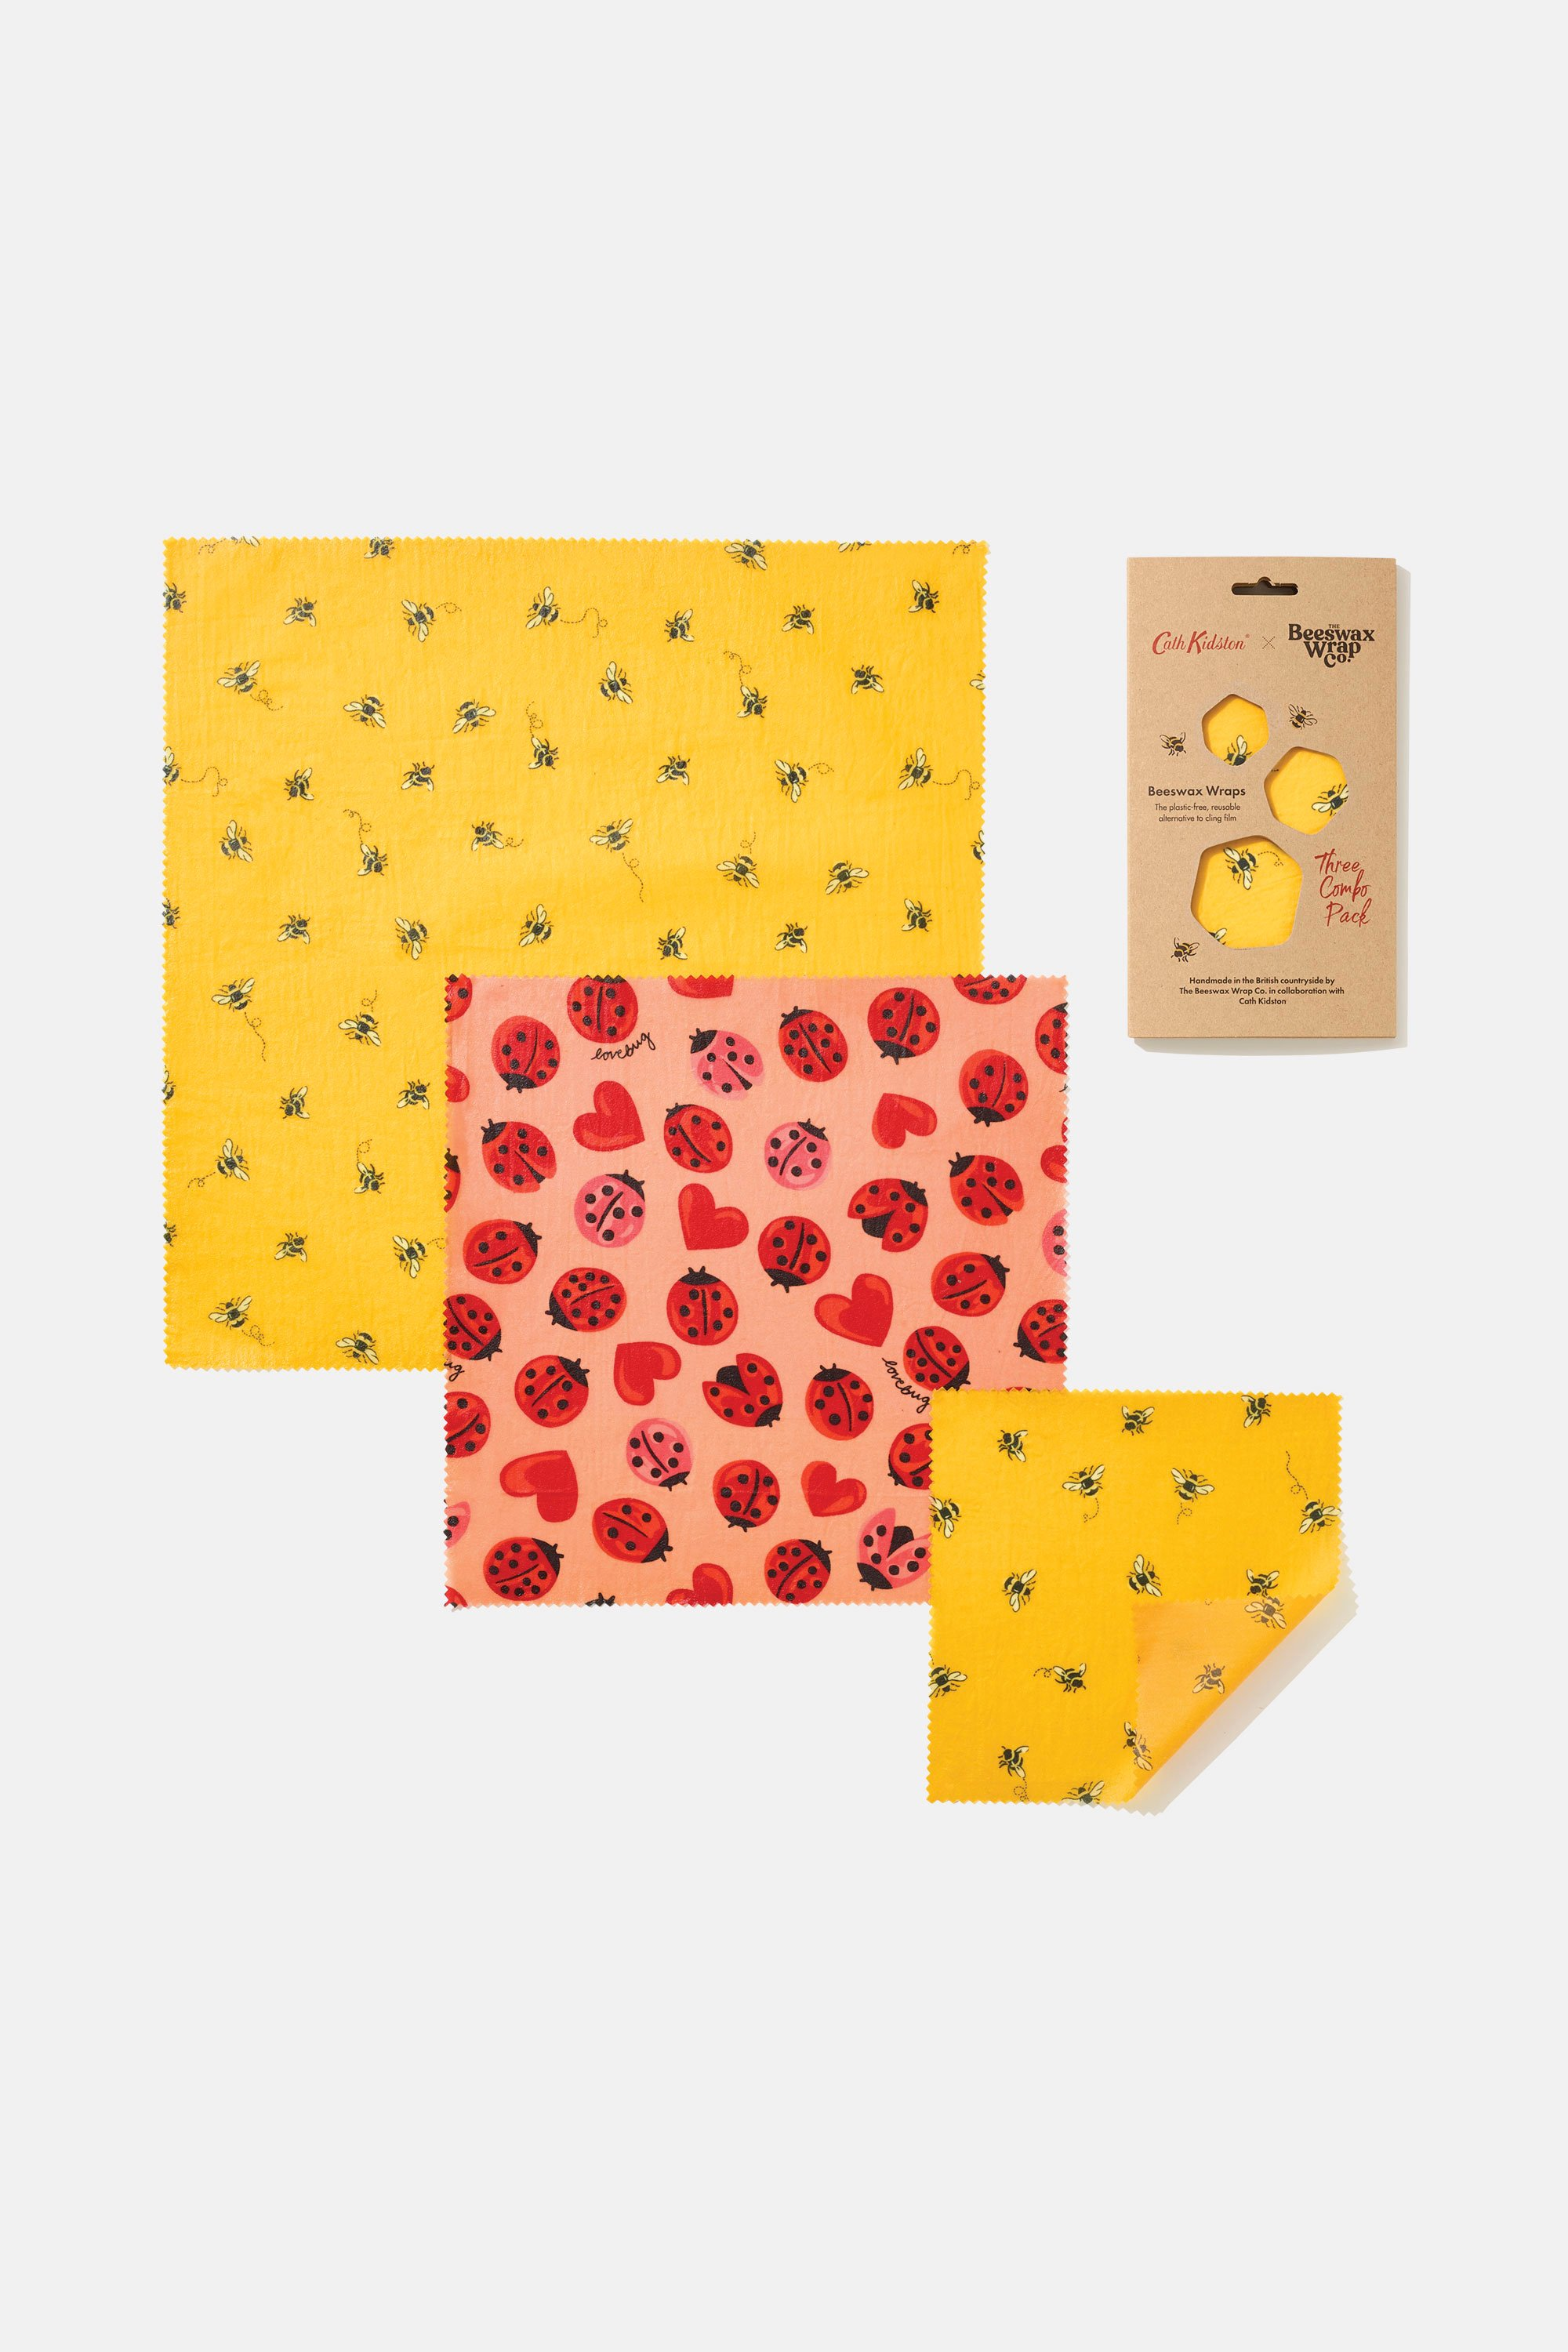 Cath Kidston The Beeswax Wrap Co. Bee 3 Wrap Combo Pack in Deep Yellow